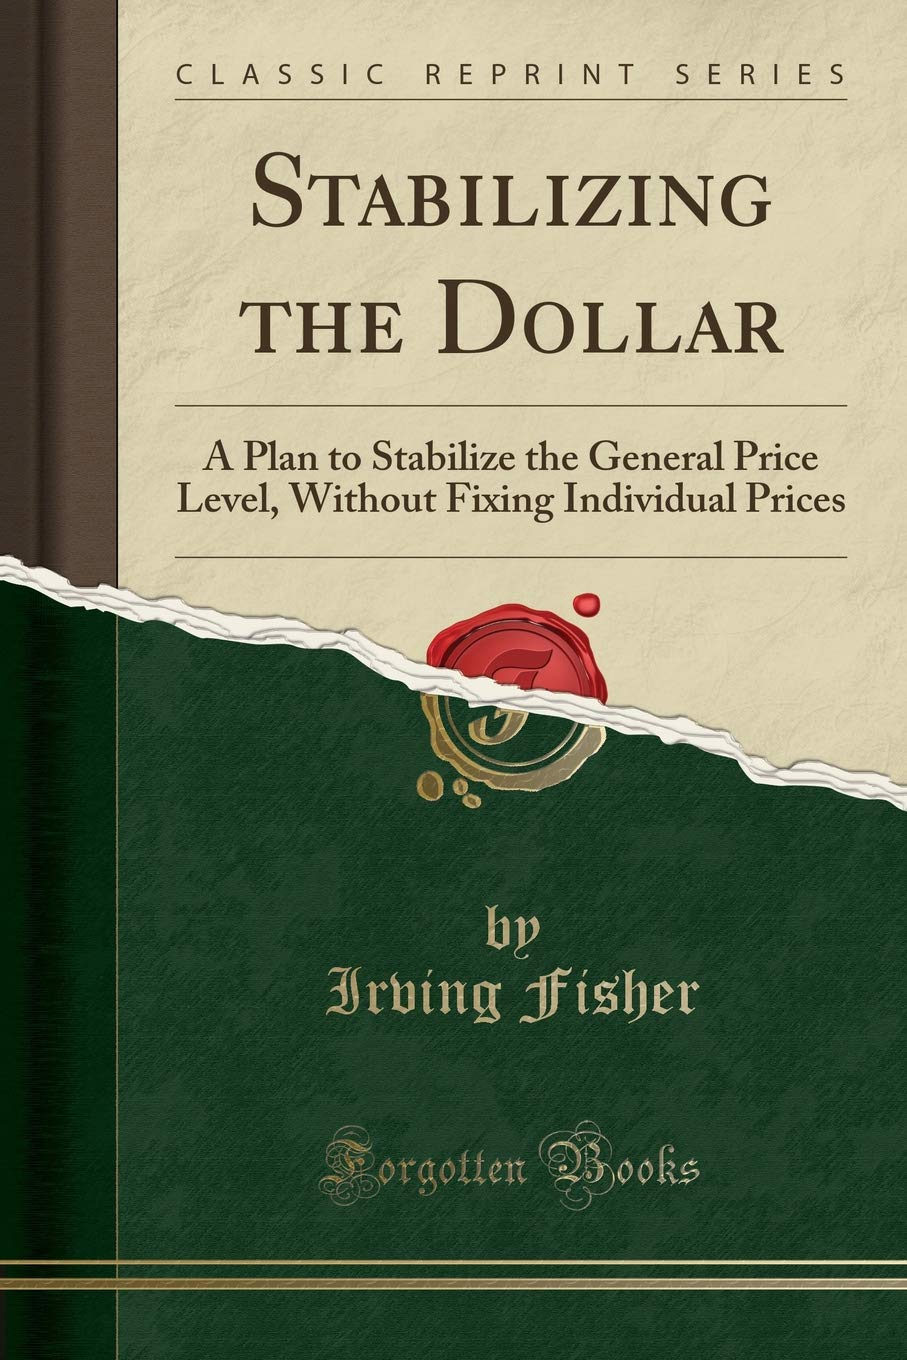 Stabilizing the Dollar: A Plan to Stabilize the General Price Level, Without Fixing Individual Prices (Classic Reprint) pdf